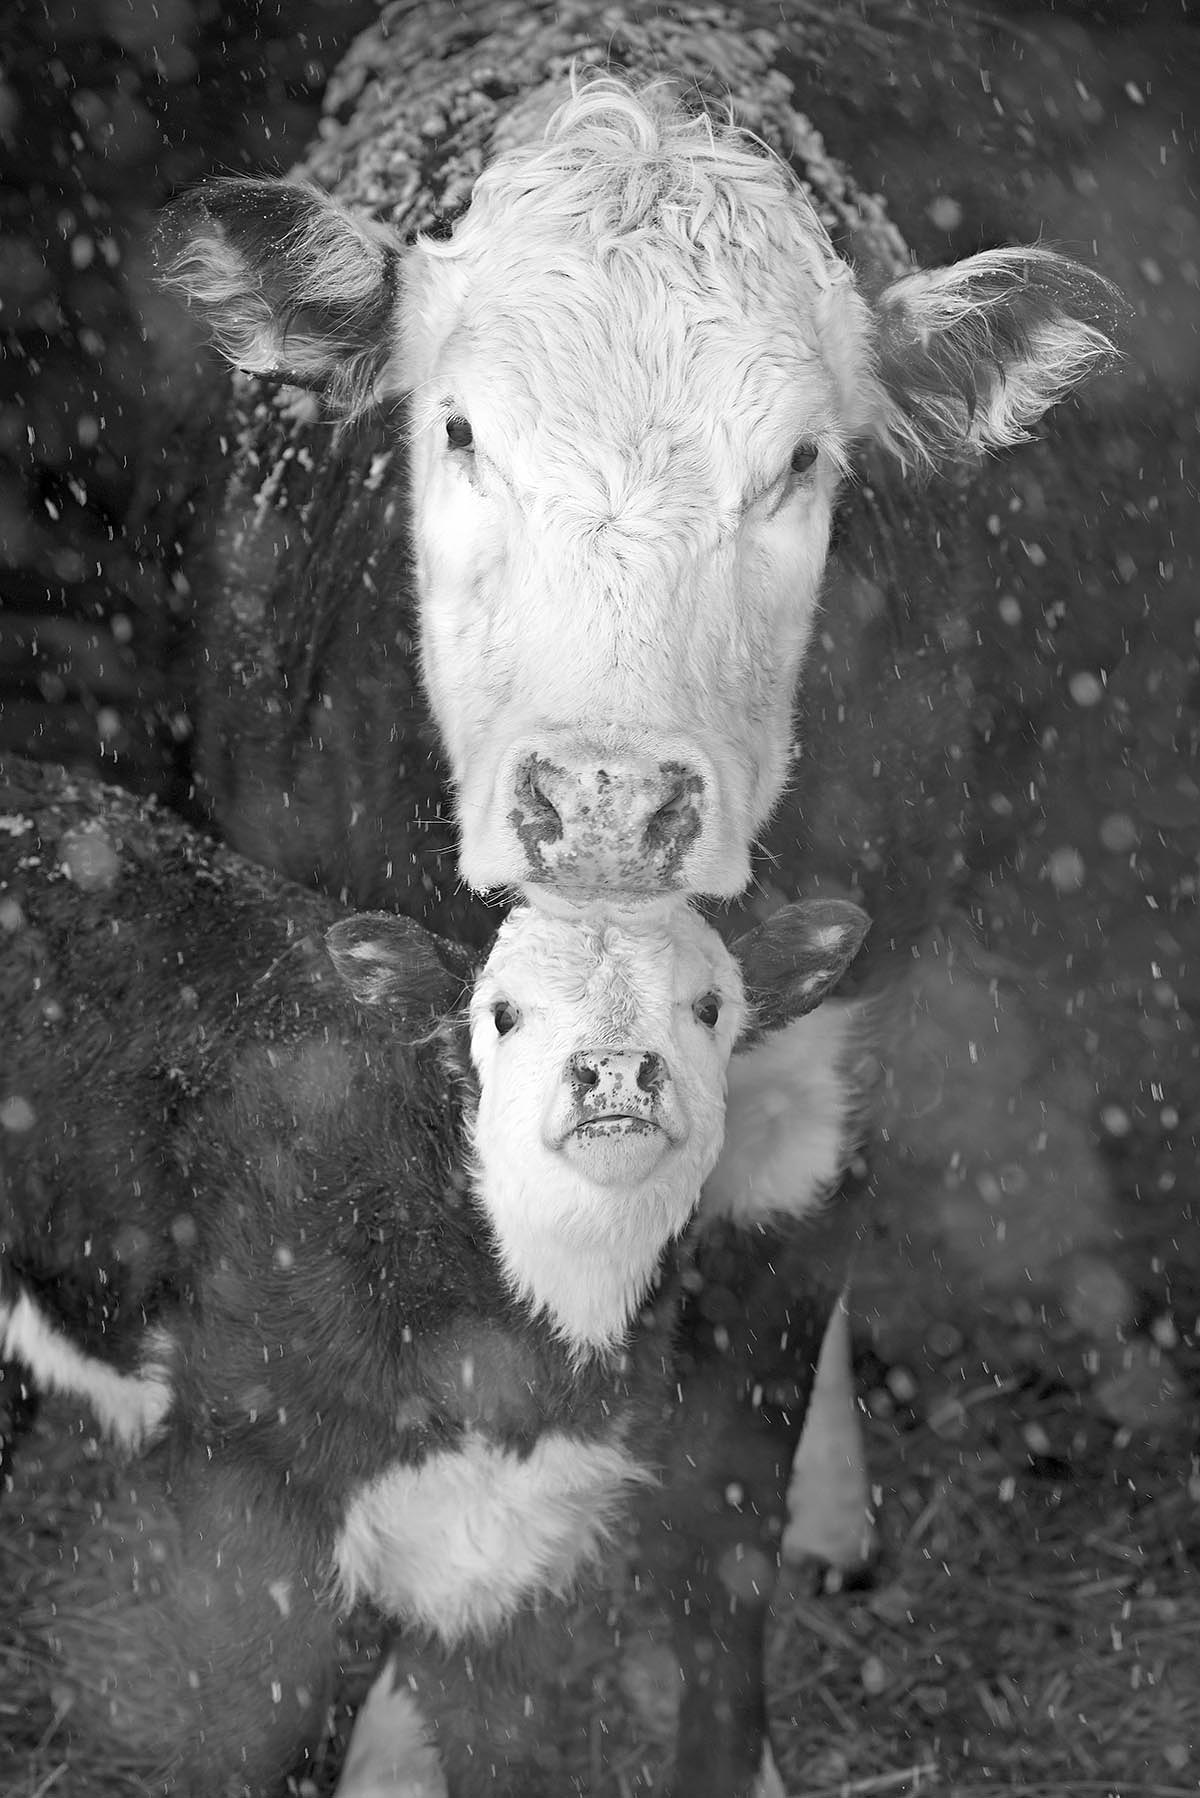 Black and white farm animal photography greeting cards for sale